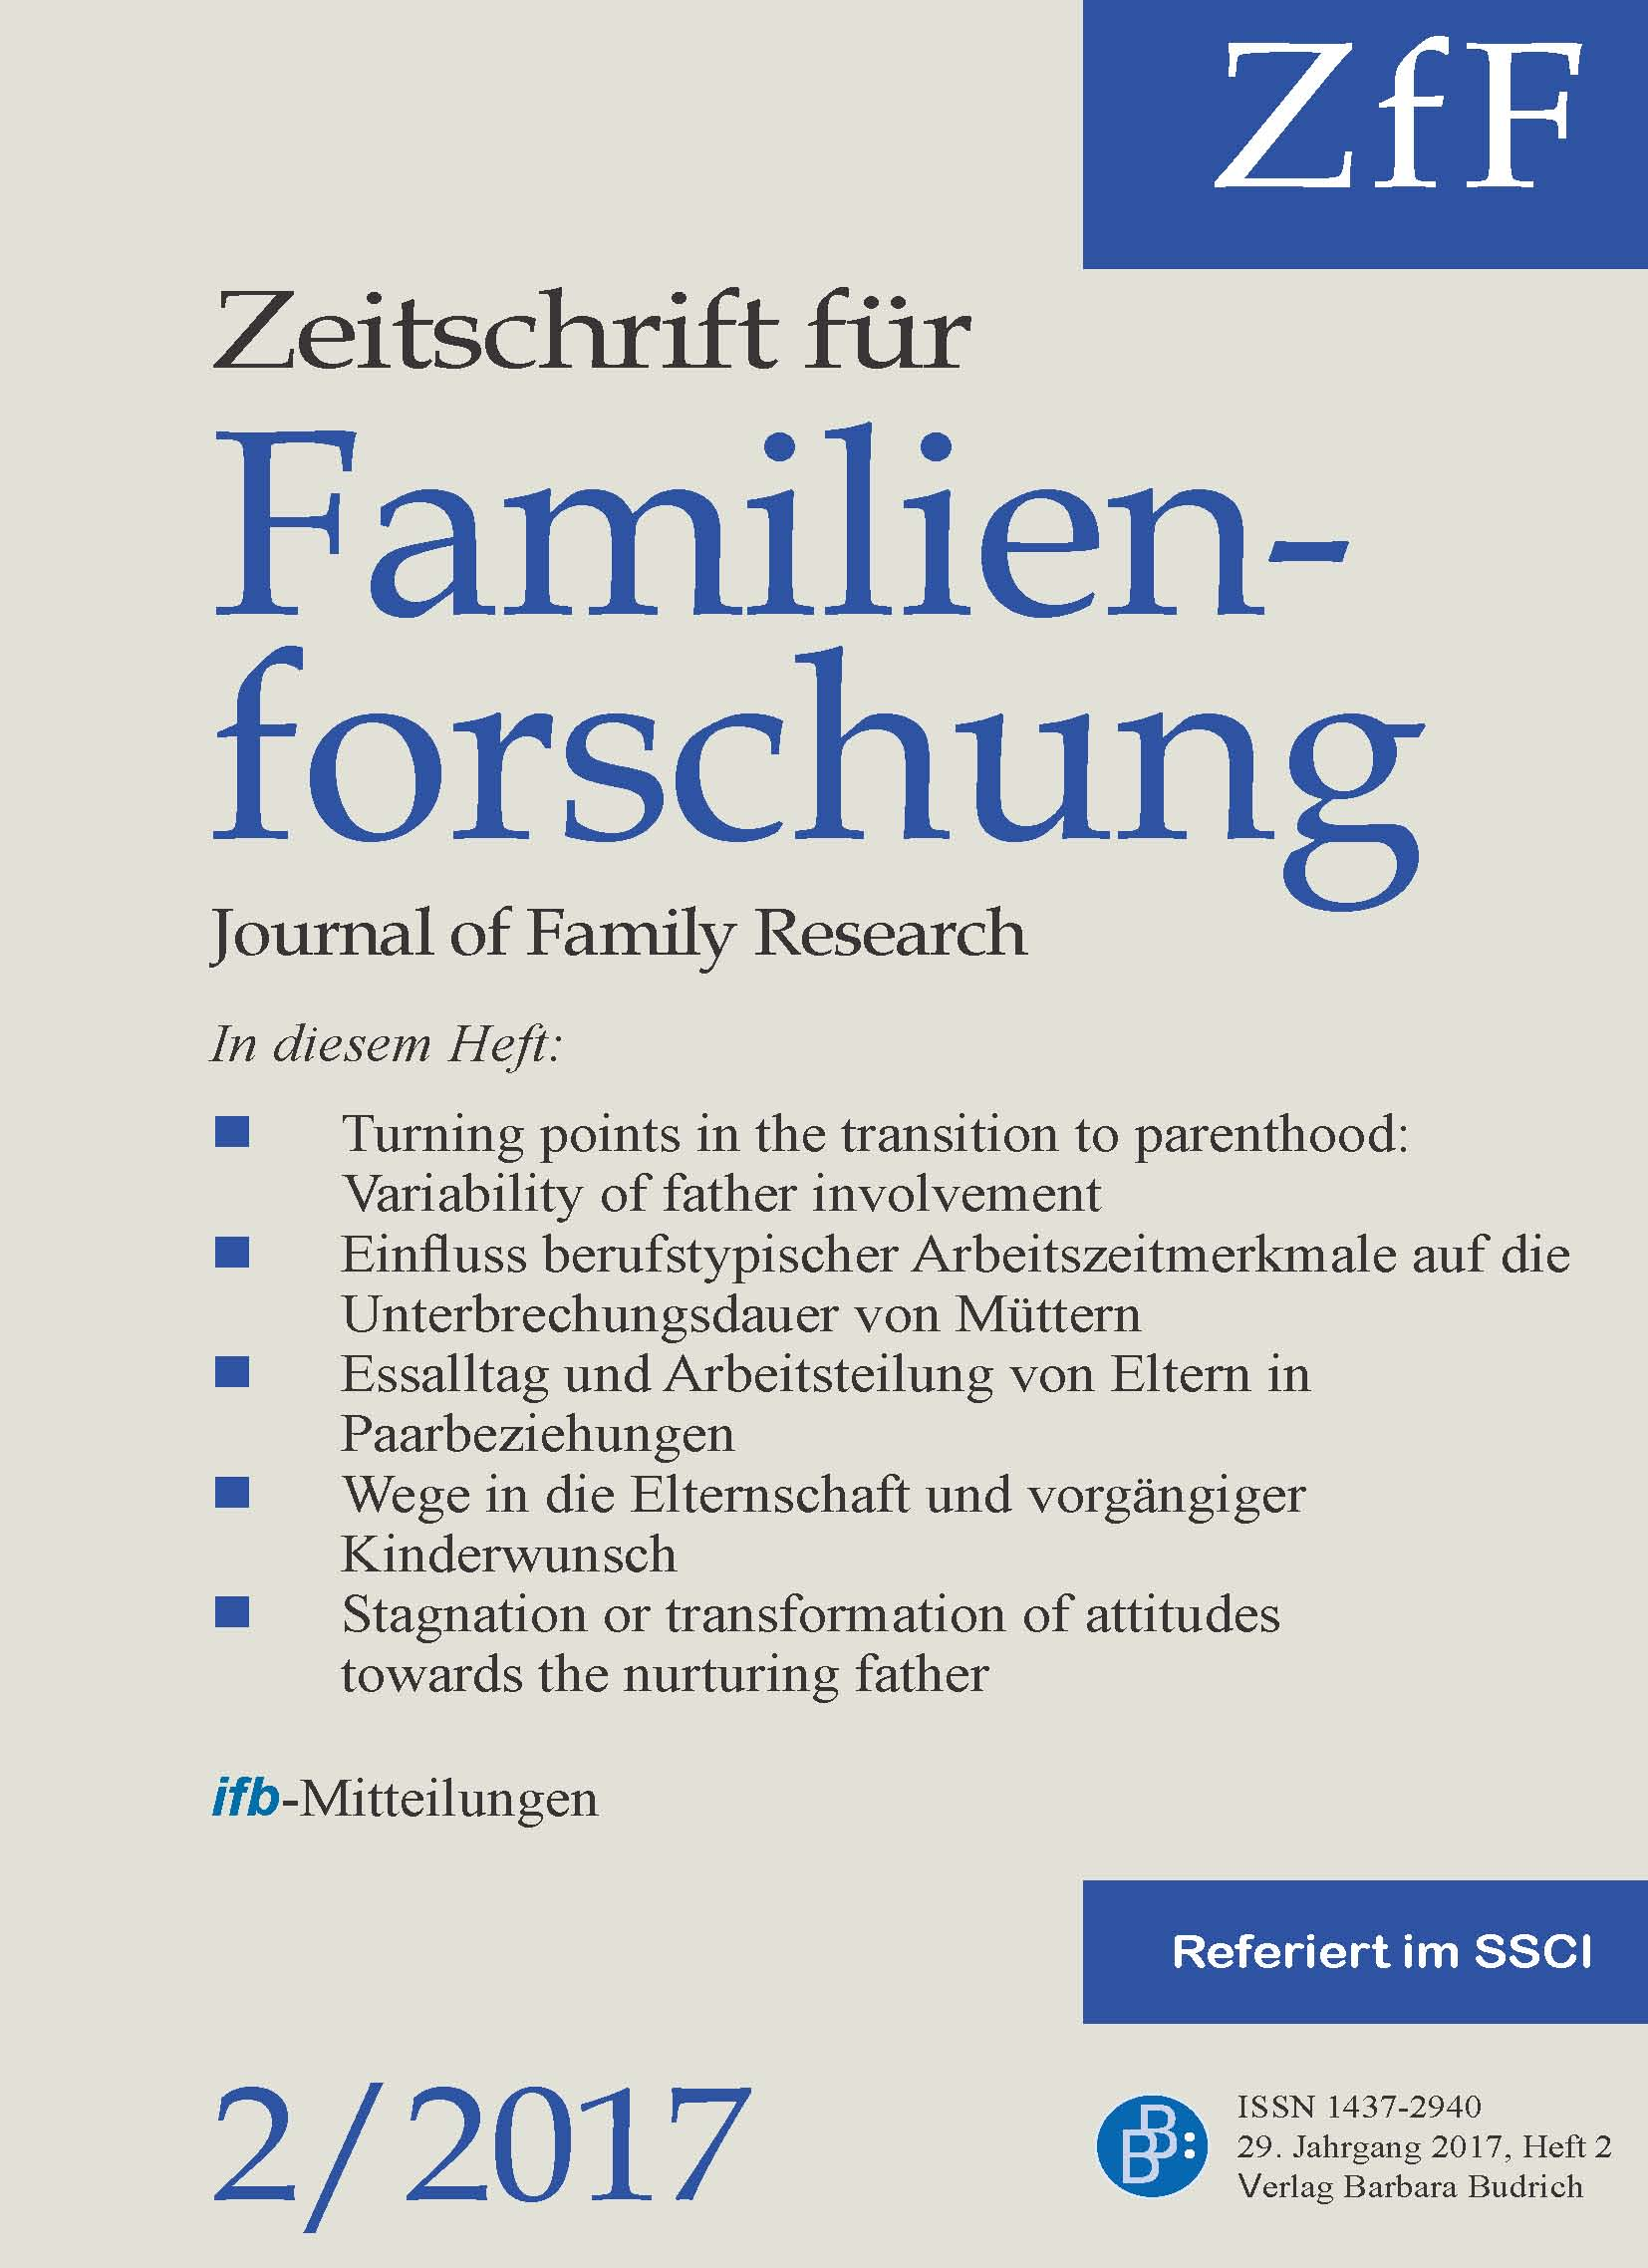 ZfF – Zeitschrift für Familienforschung / Journal of Family Research 2-2017